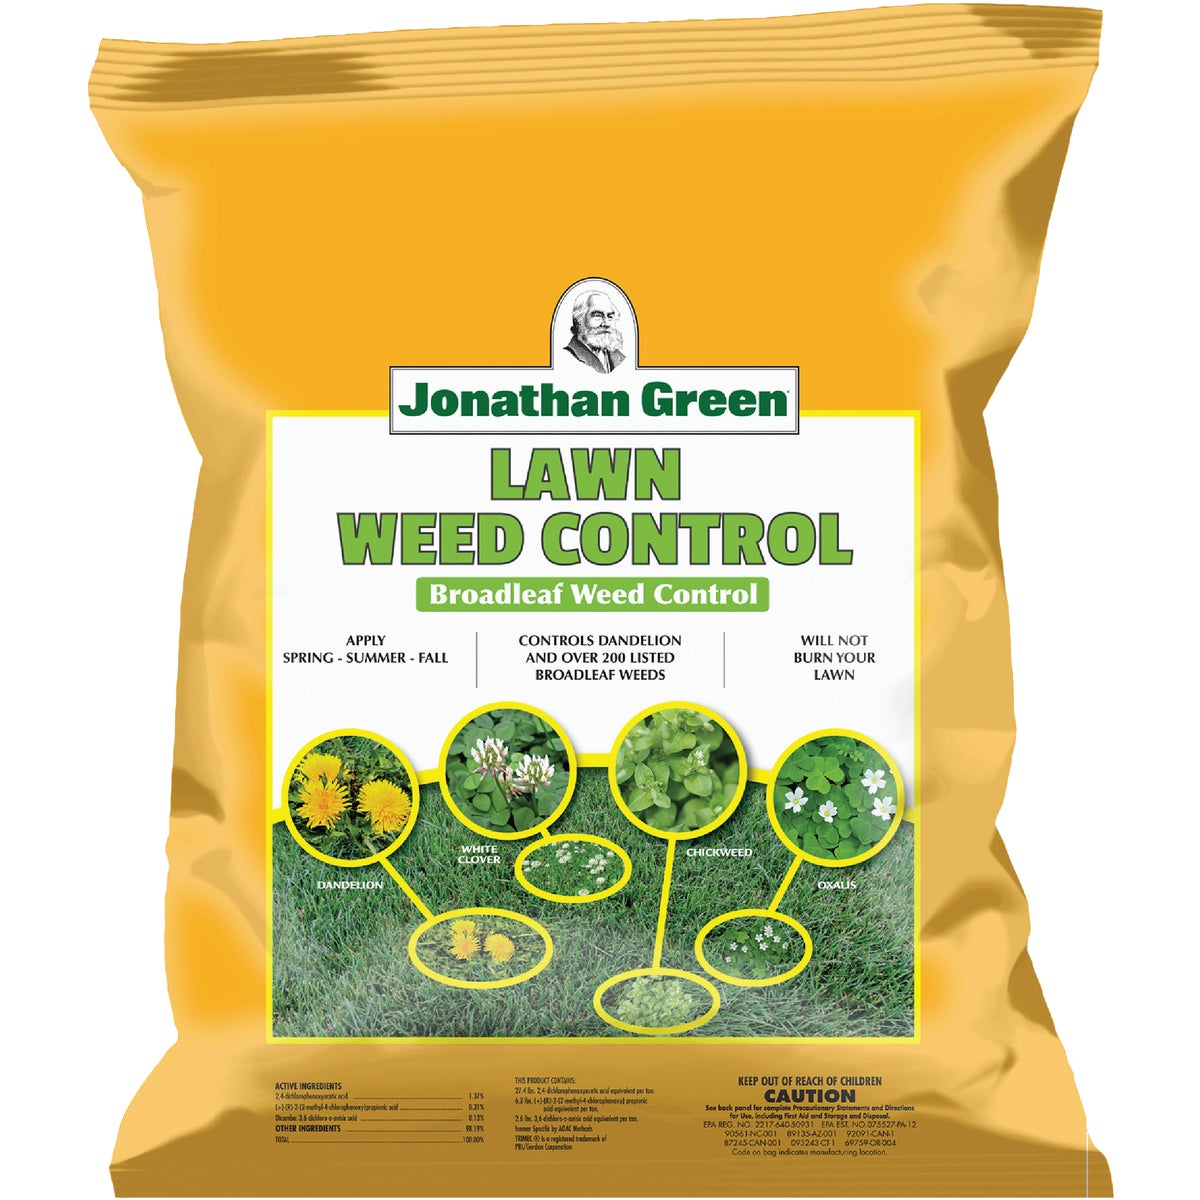 5M LAWN WEED CONTROL - 12195 by Jonathan Green